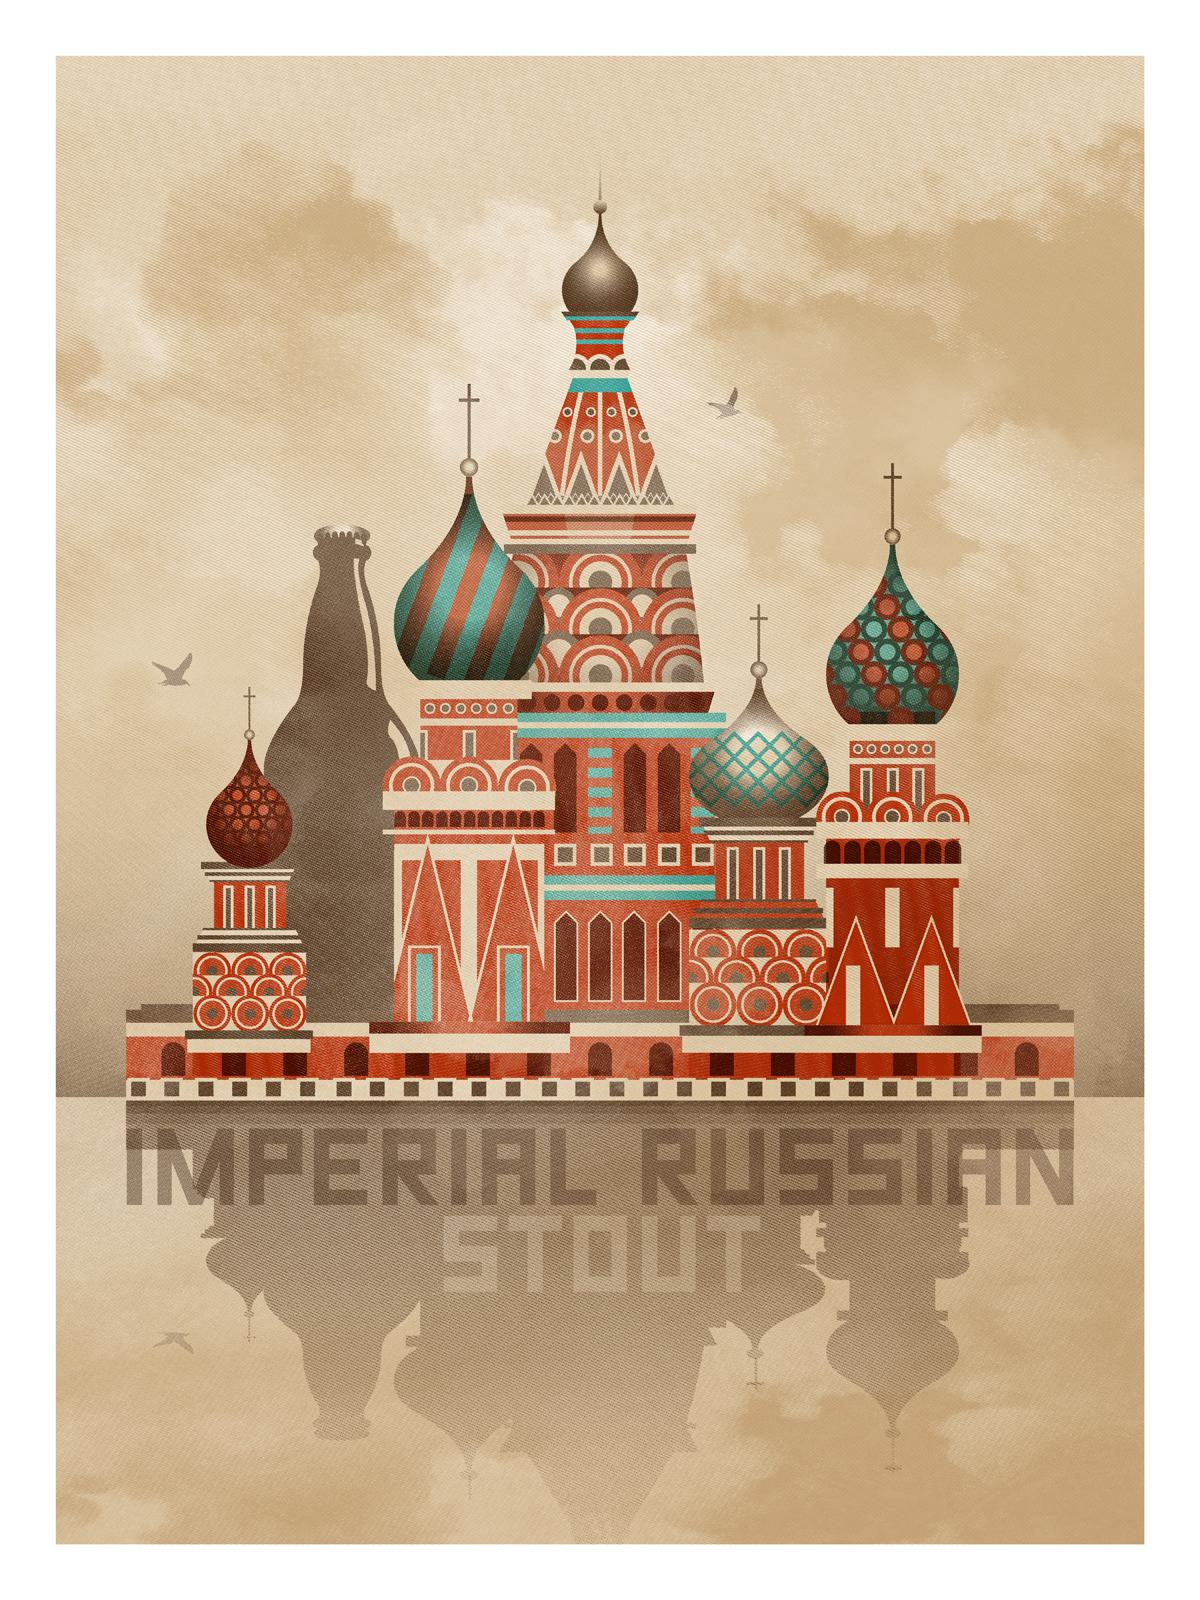 Imperial Russian Stout Beer - image 7 - student project